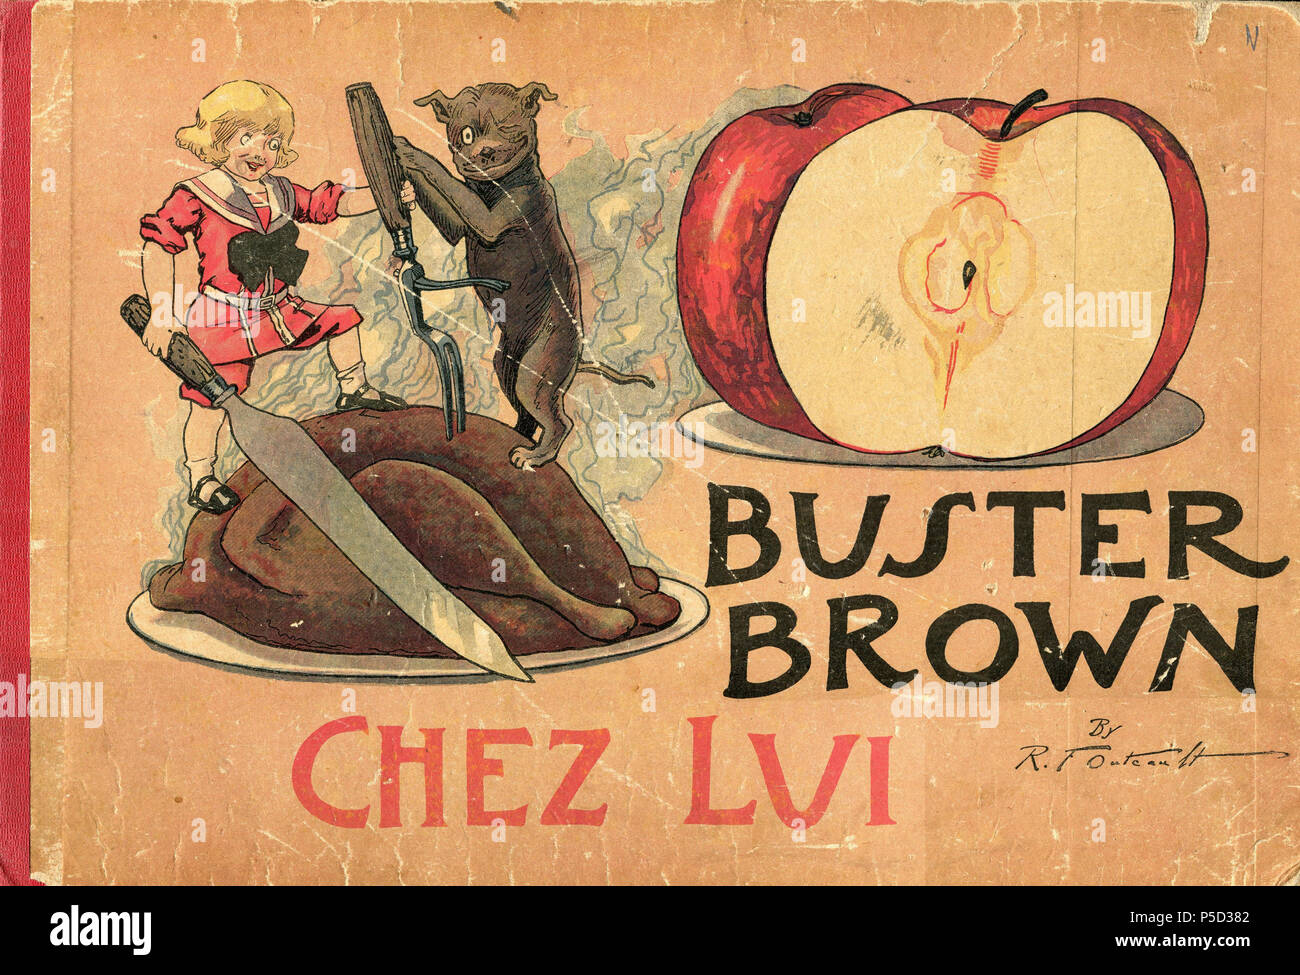 N/A. Français : Buster Brown chez lui . 8 October 2011. Richard Felton Outcault 6 - Buster Brown chez lui 00a - Stock Image